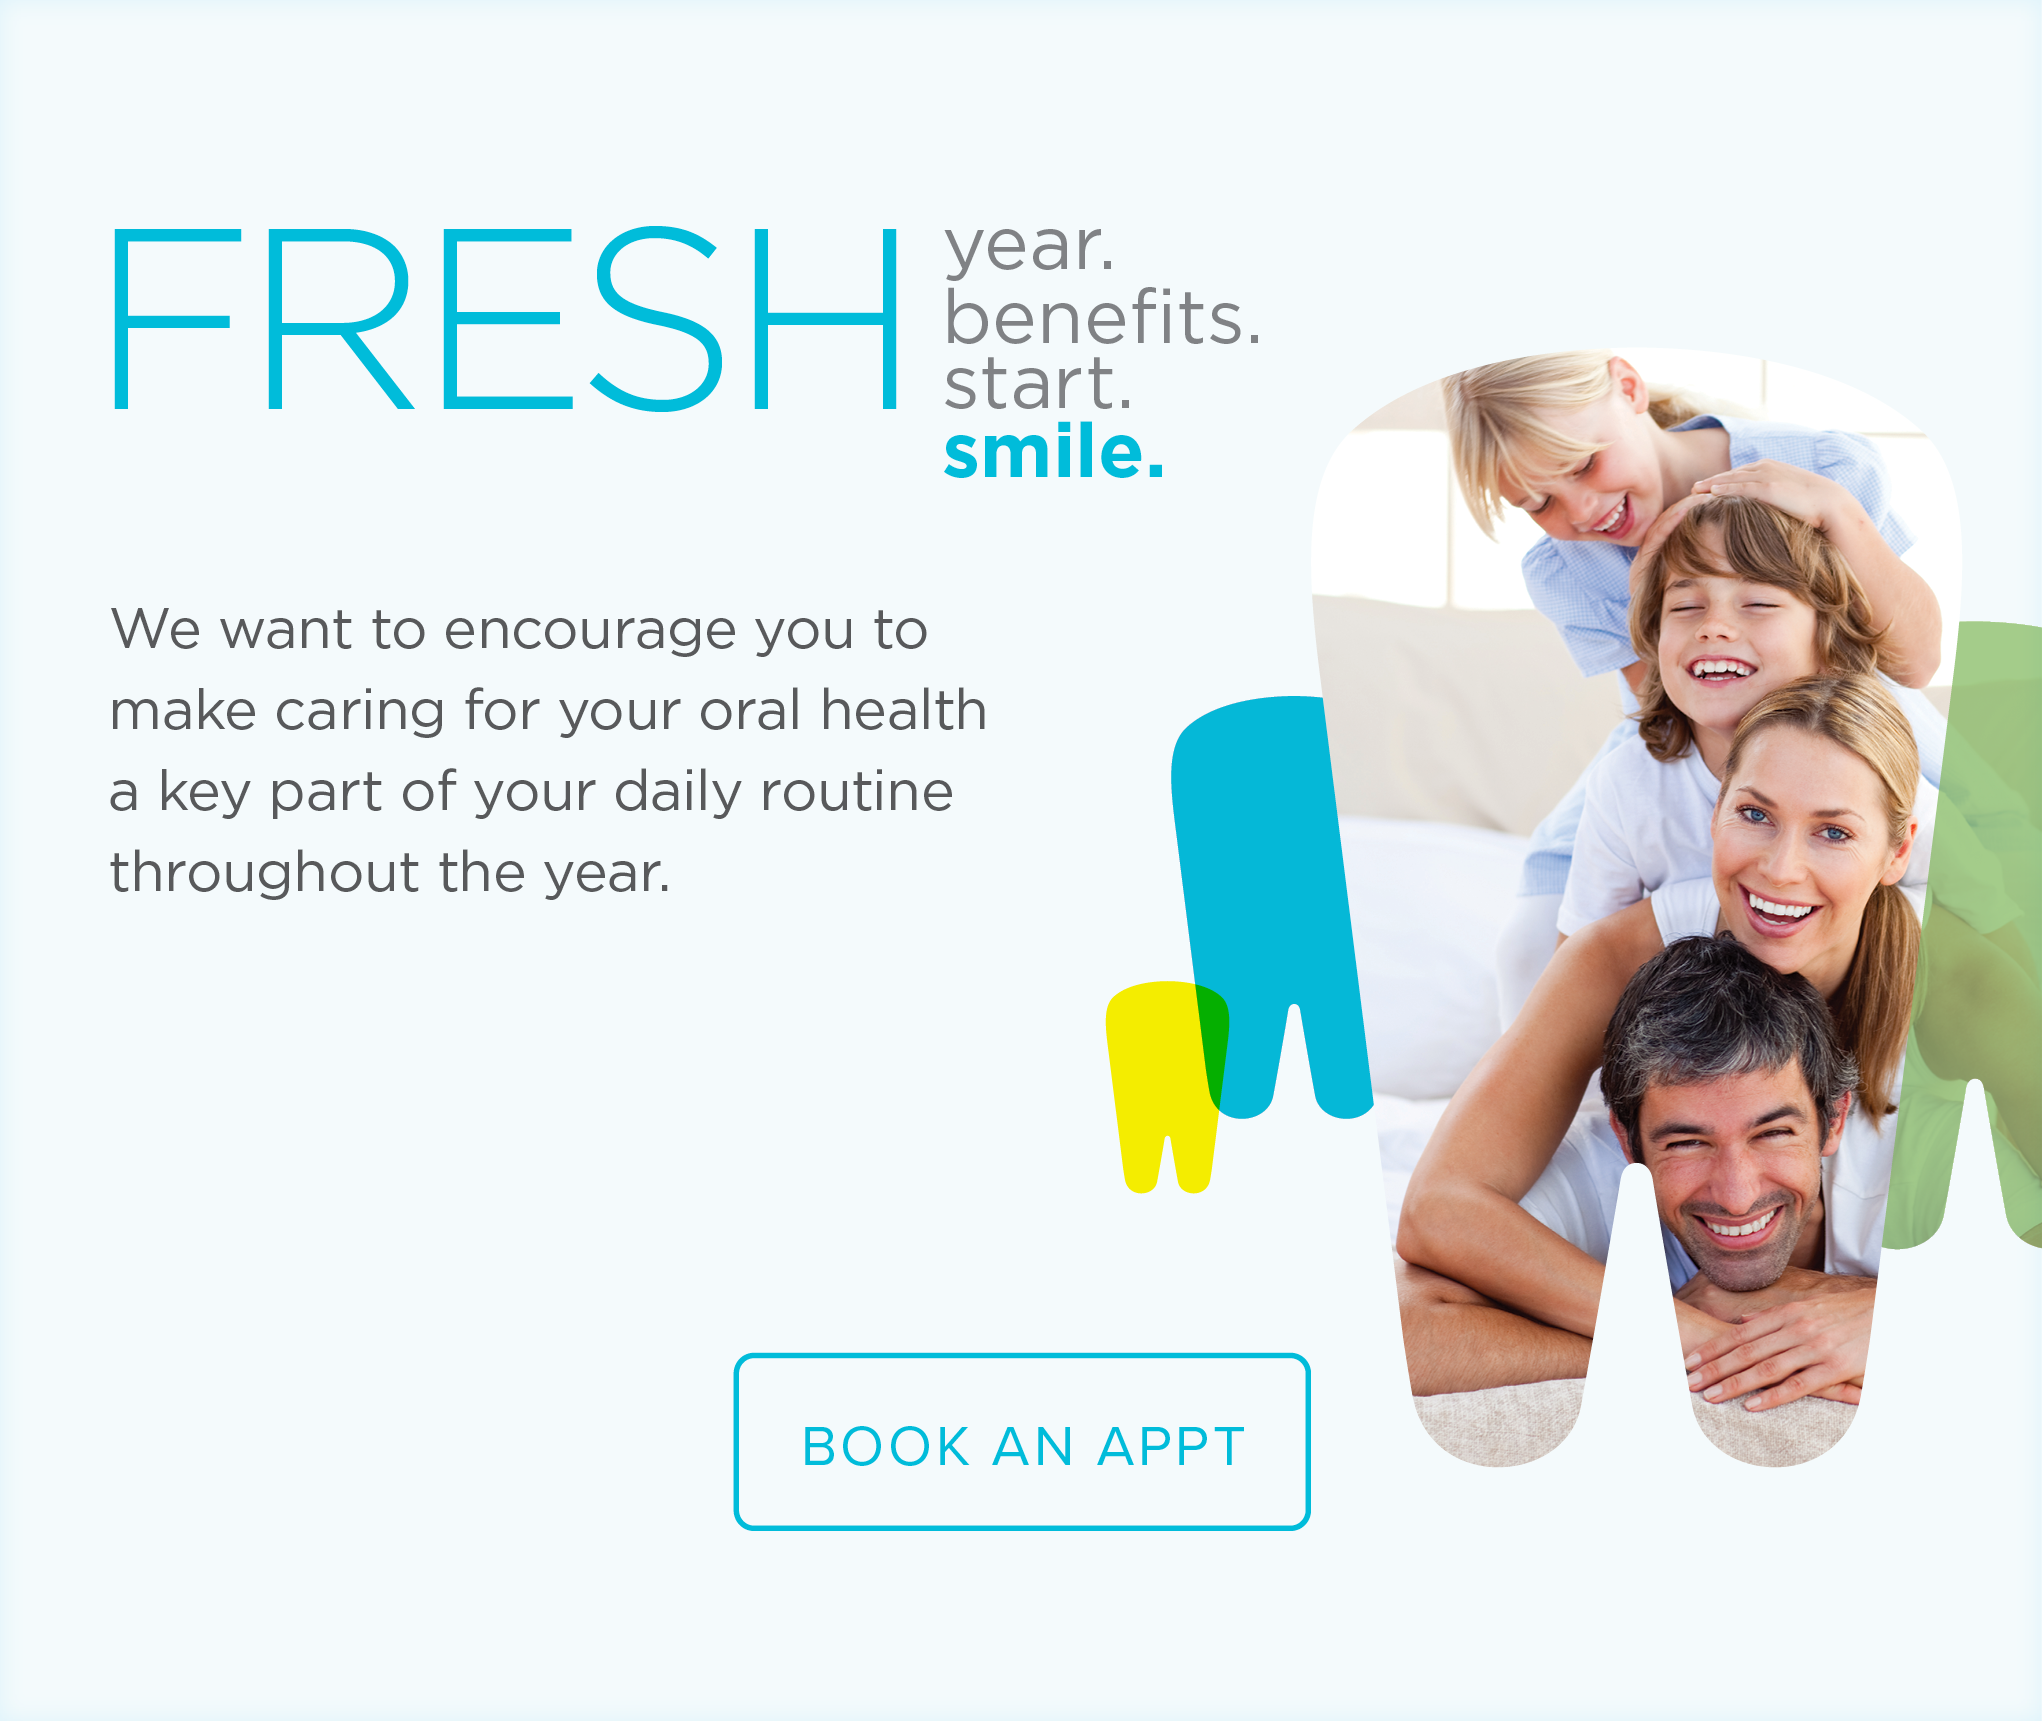 Canyon Vista Dental Group - Make the Most of Your Benefits